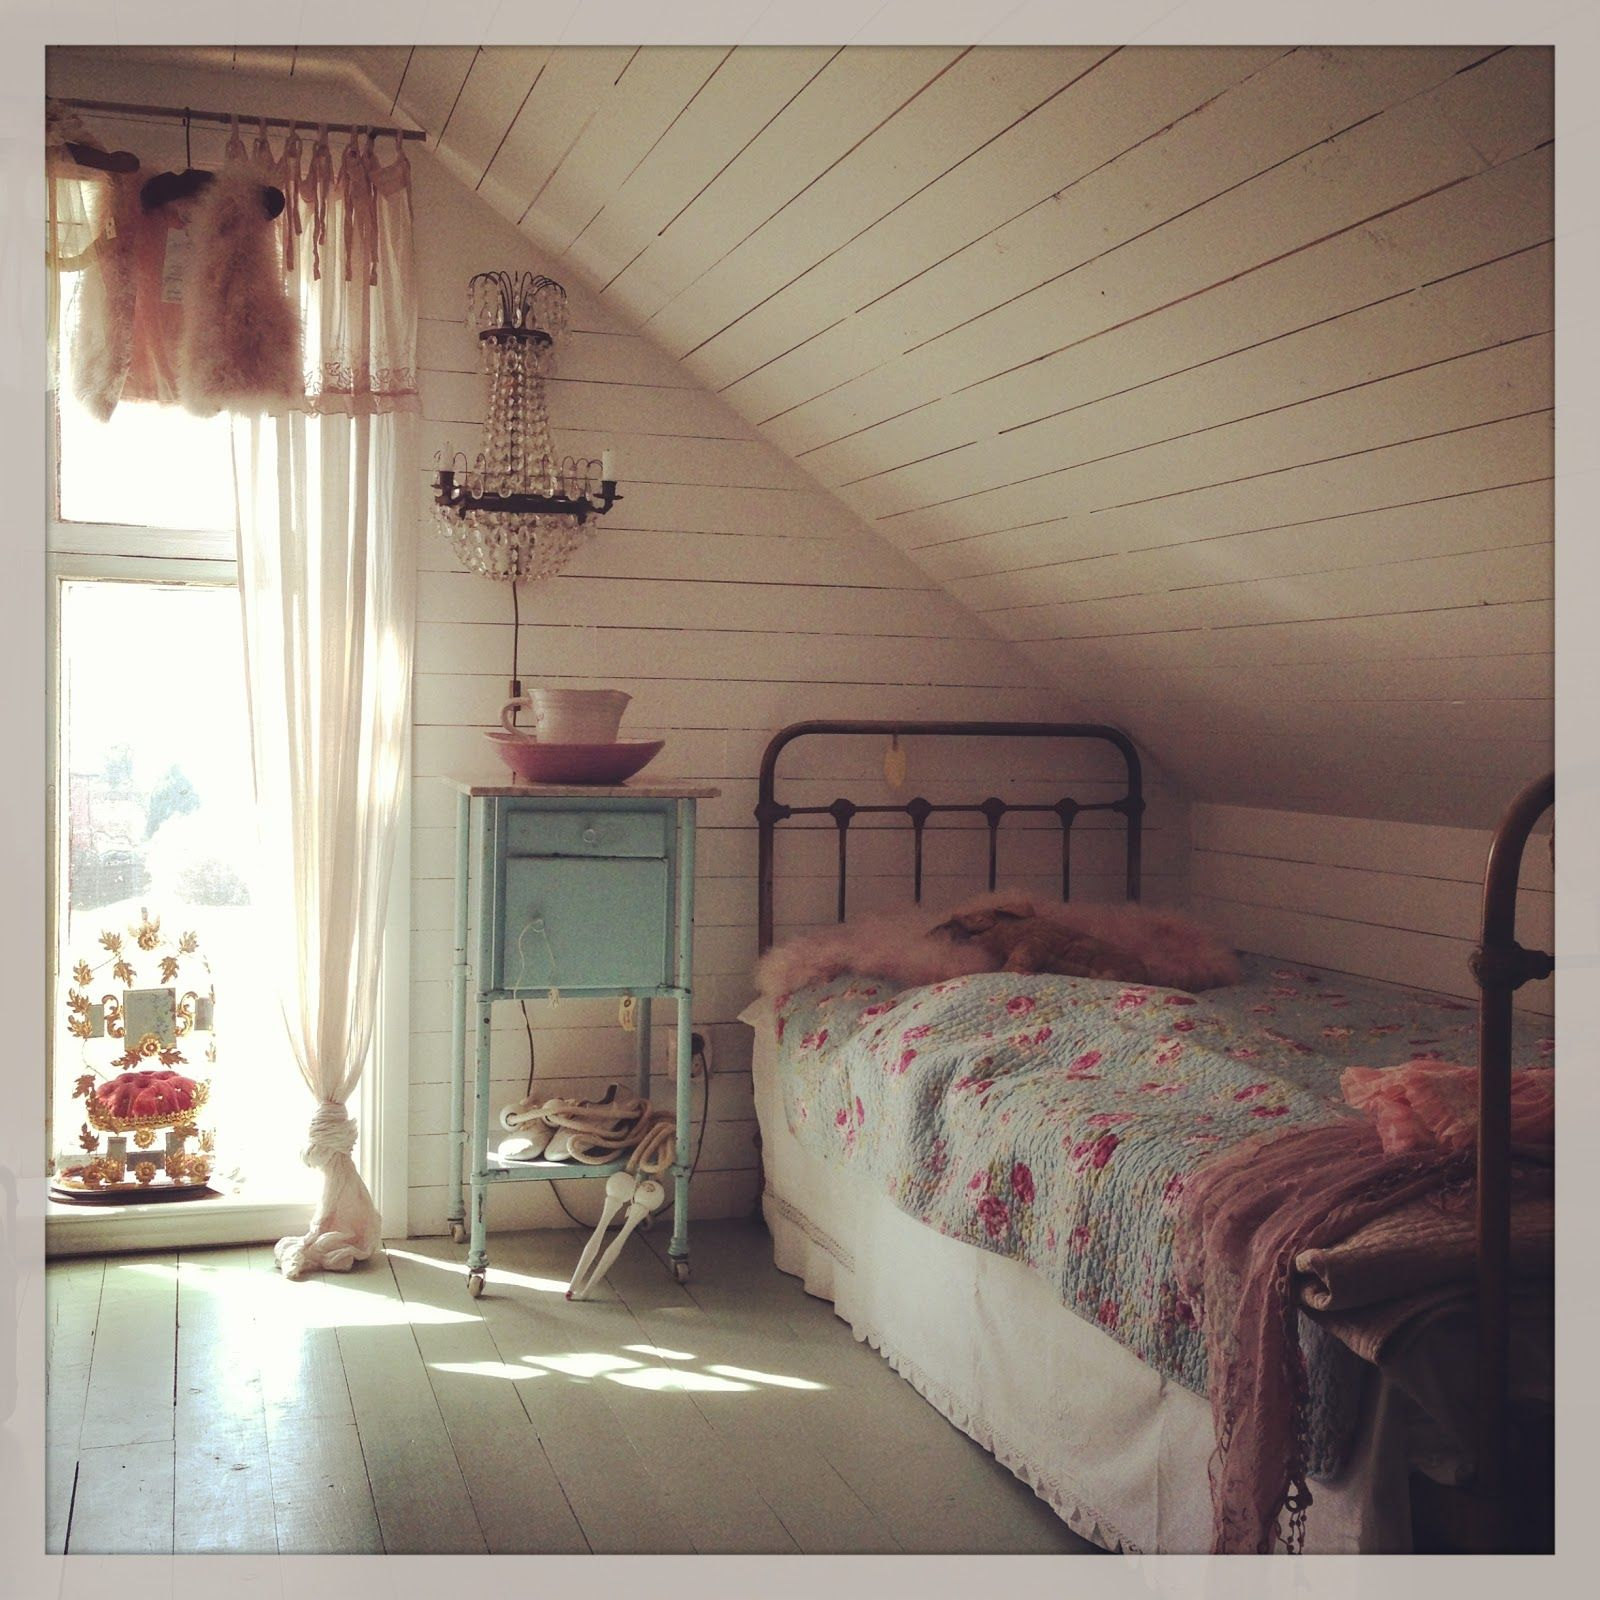 Attic spaces make the coziest bedrooms maybe